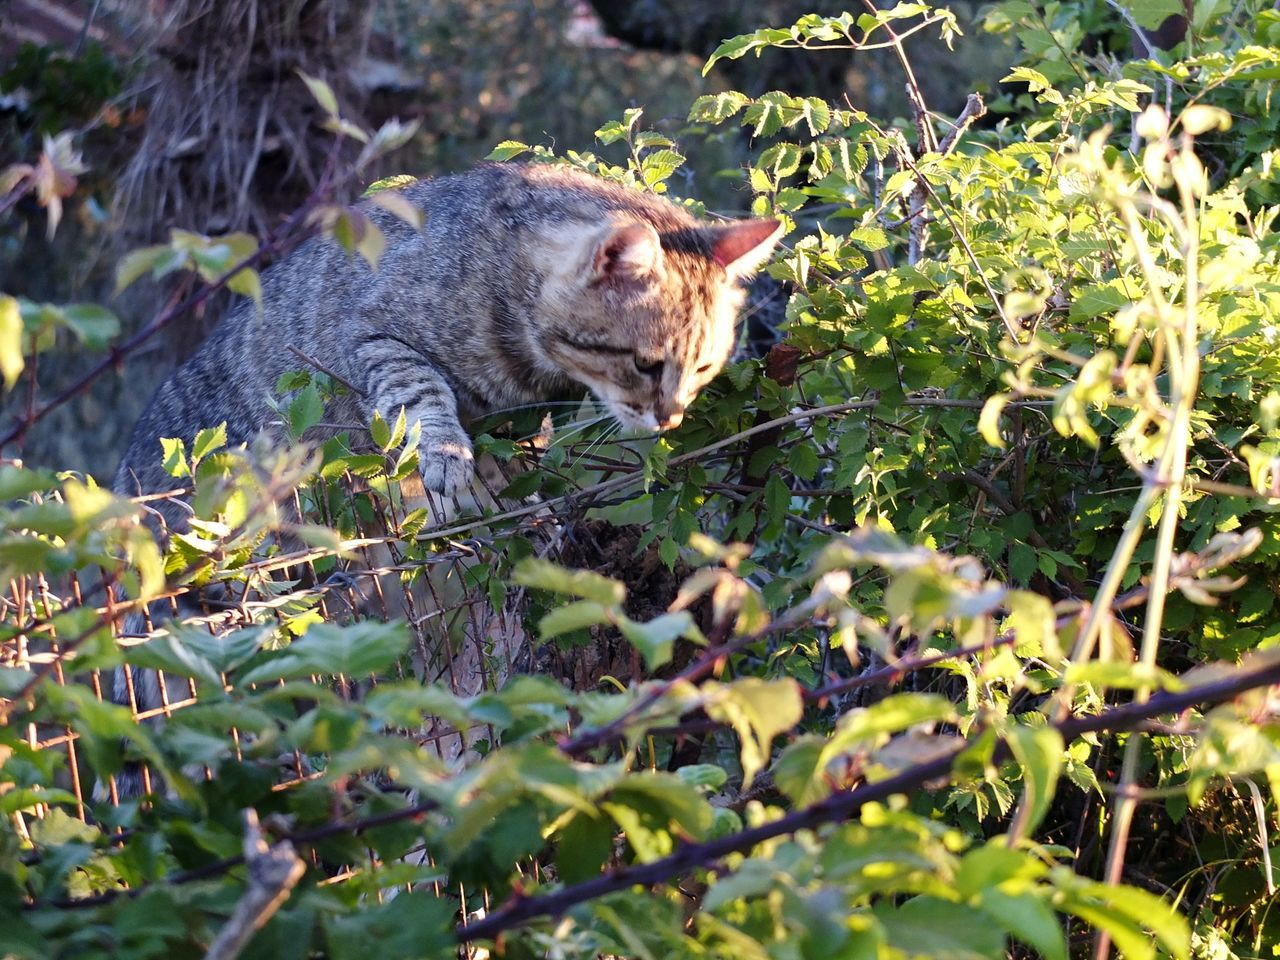 one animal, domestic cat, animal themes, feline, day, plant, outdoors, mammal, no people, growth, domestic animals, leaf, alertness, pets, nature, grass